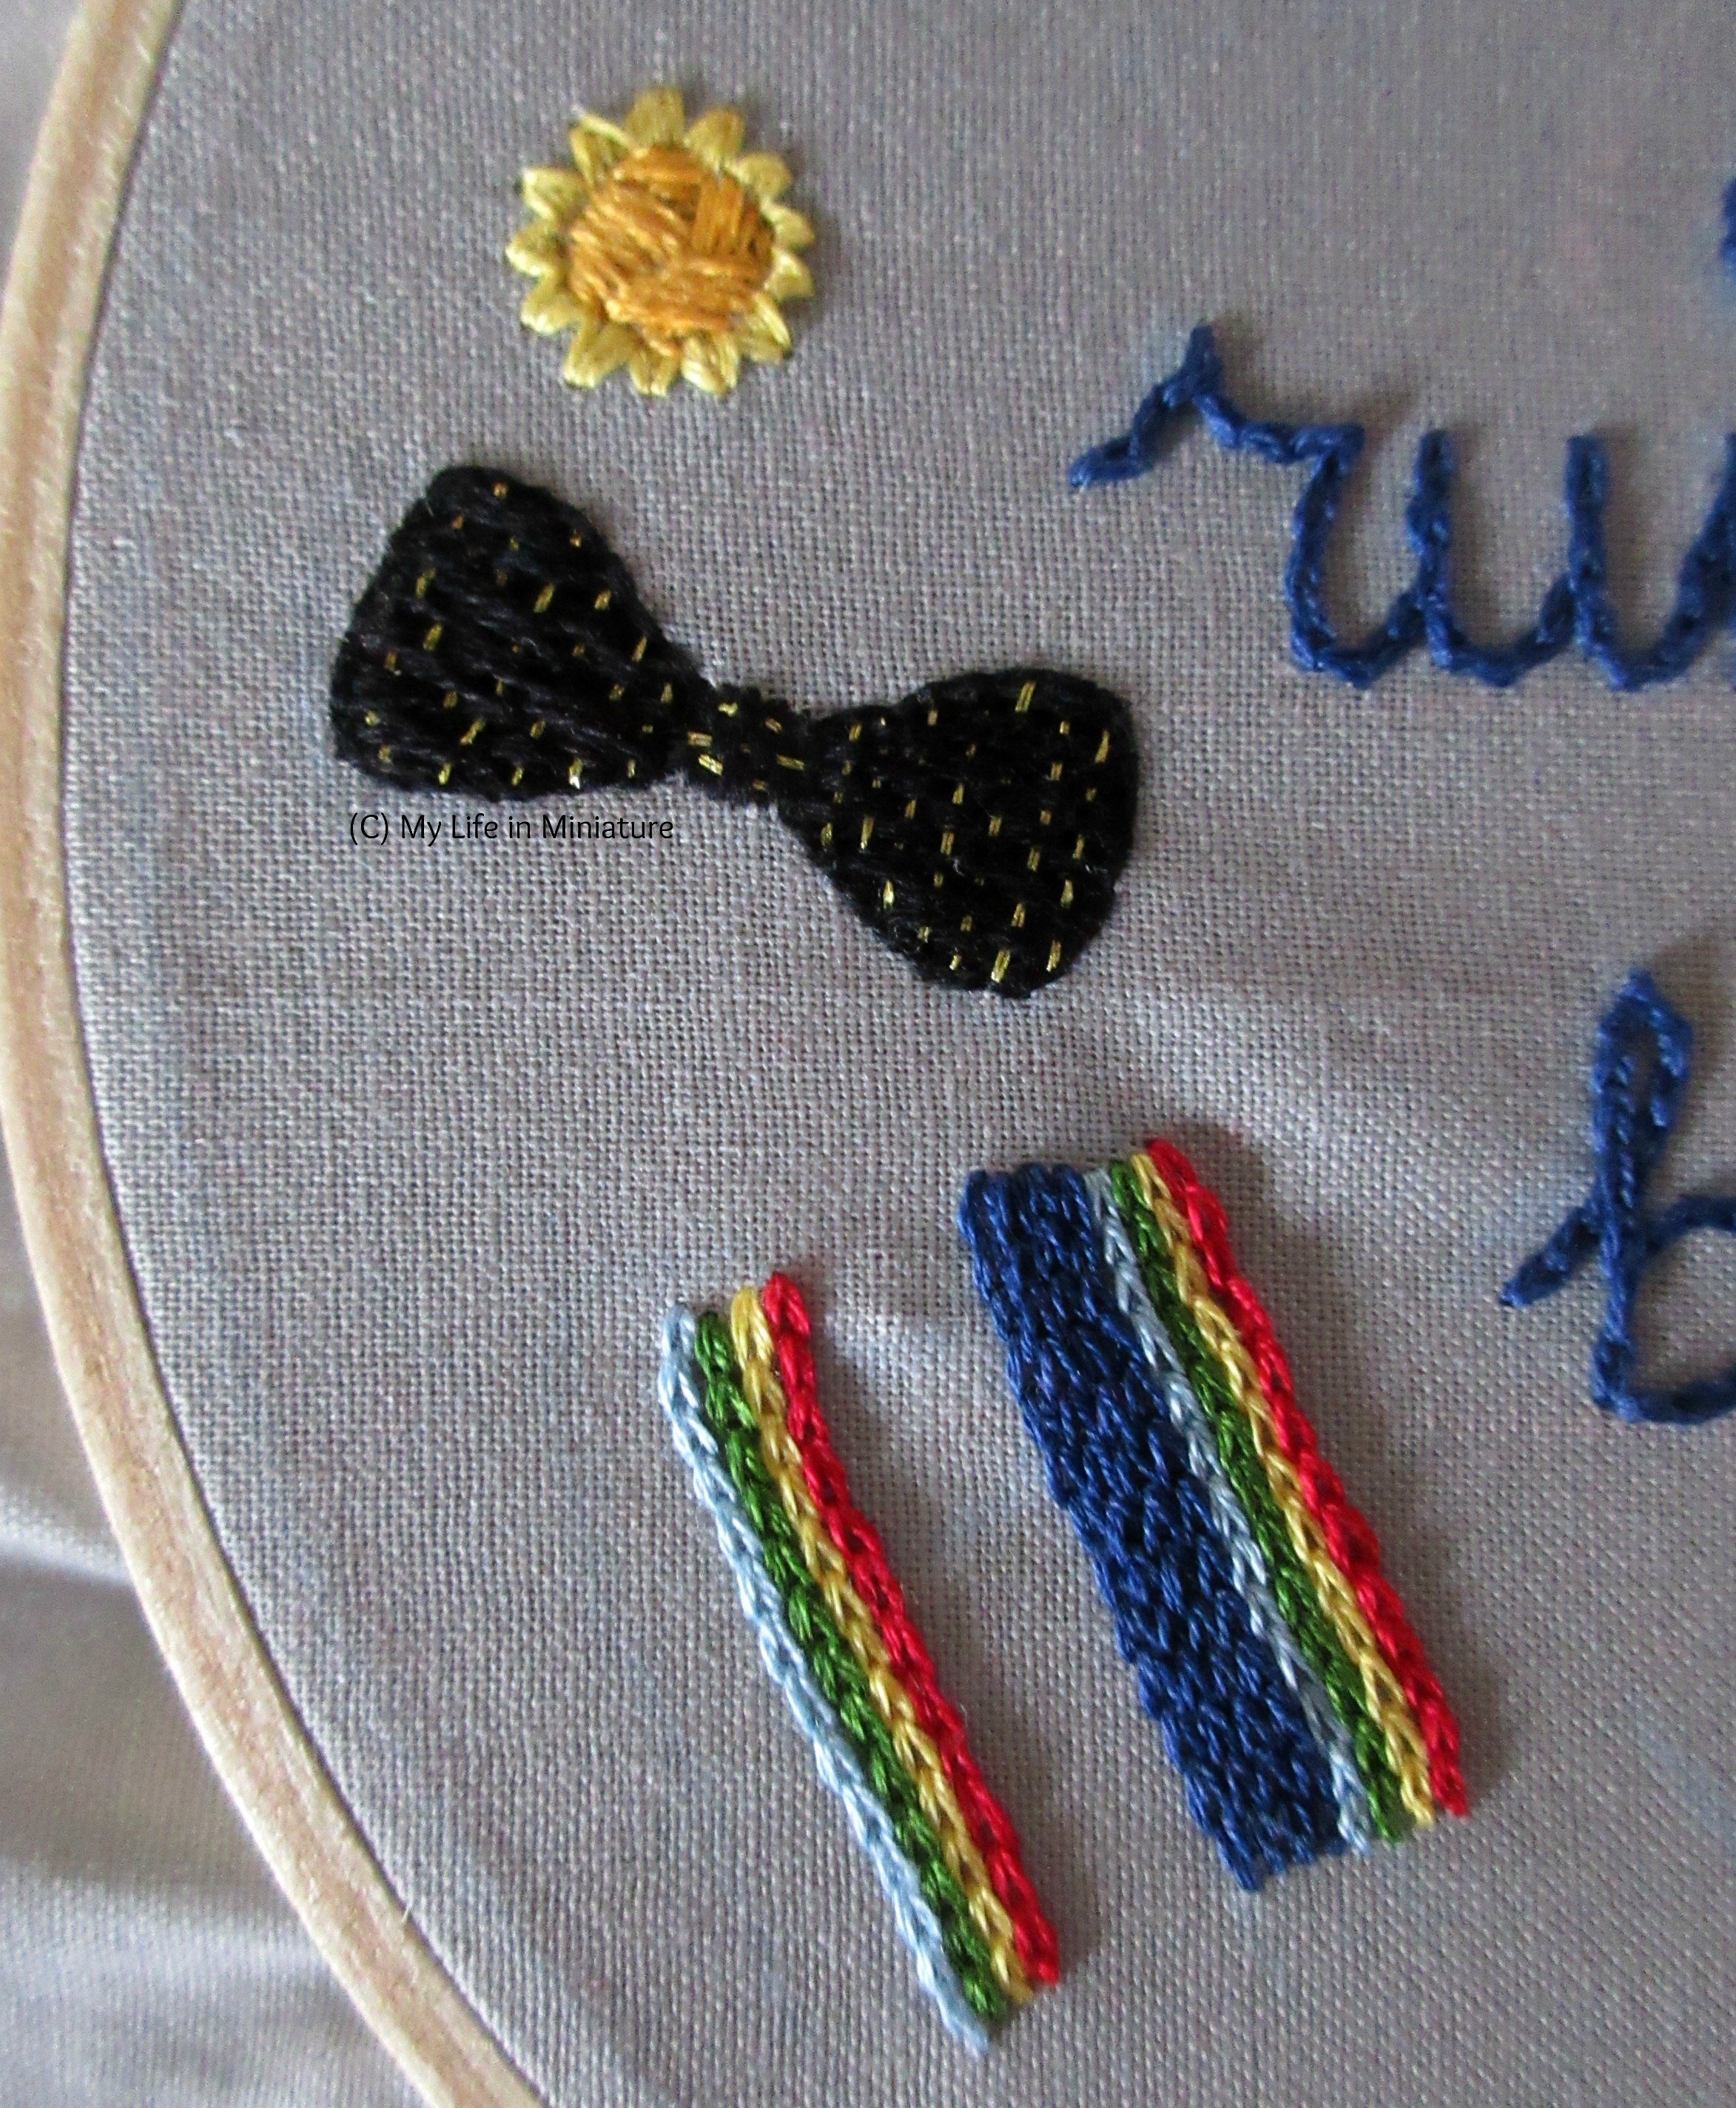 A shot of the daffodil motif, the bow tie, and the beginnings of a rainbow-striped scarf motif in a vertical row down one side of the Thirteenth Doctor embroidery hoop.